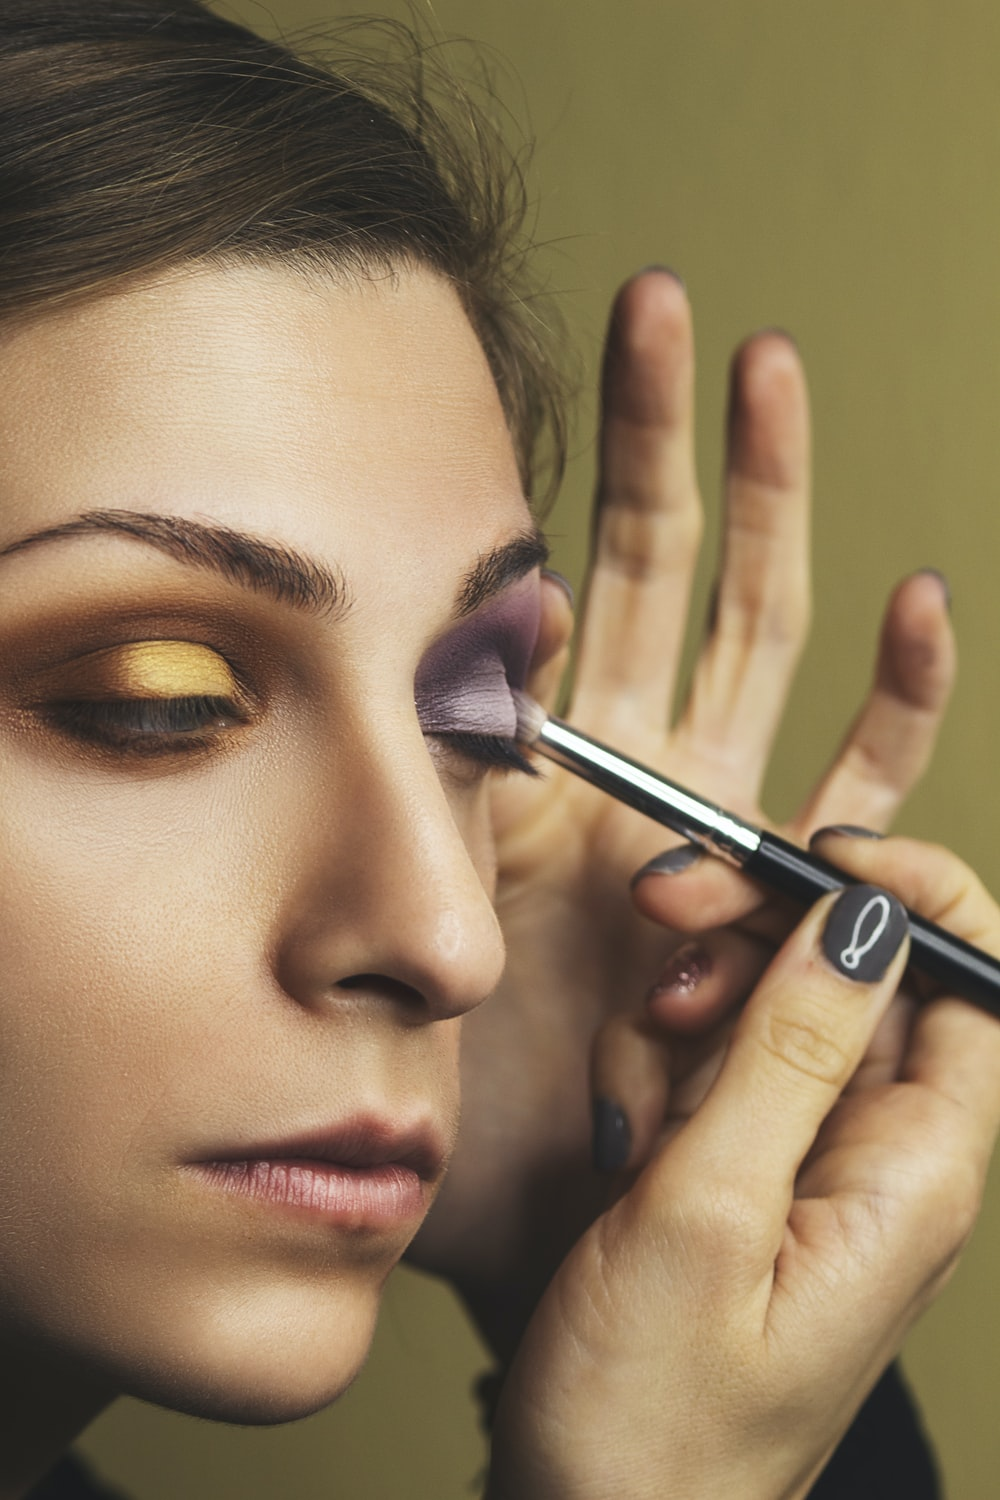 Contrasting-shades-1 Top 10 Outdated Beauty and Makeup Trends to Avoid in 2020